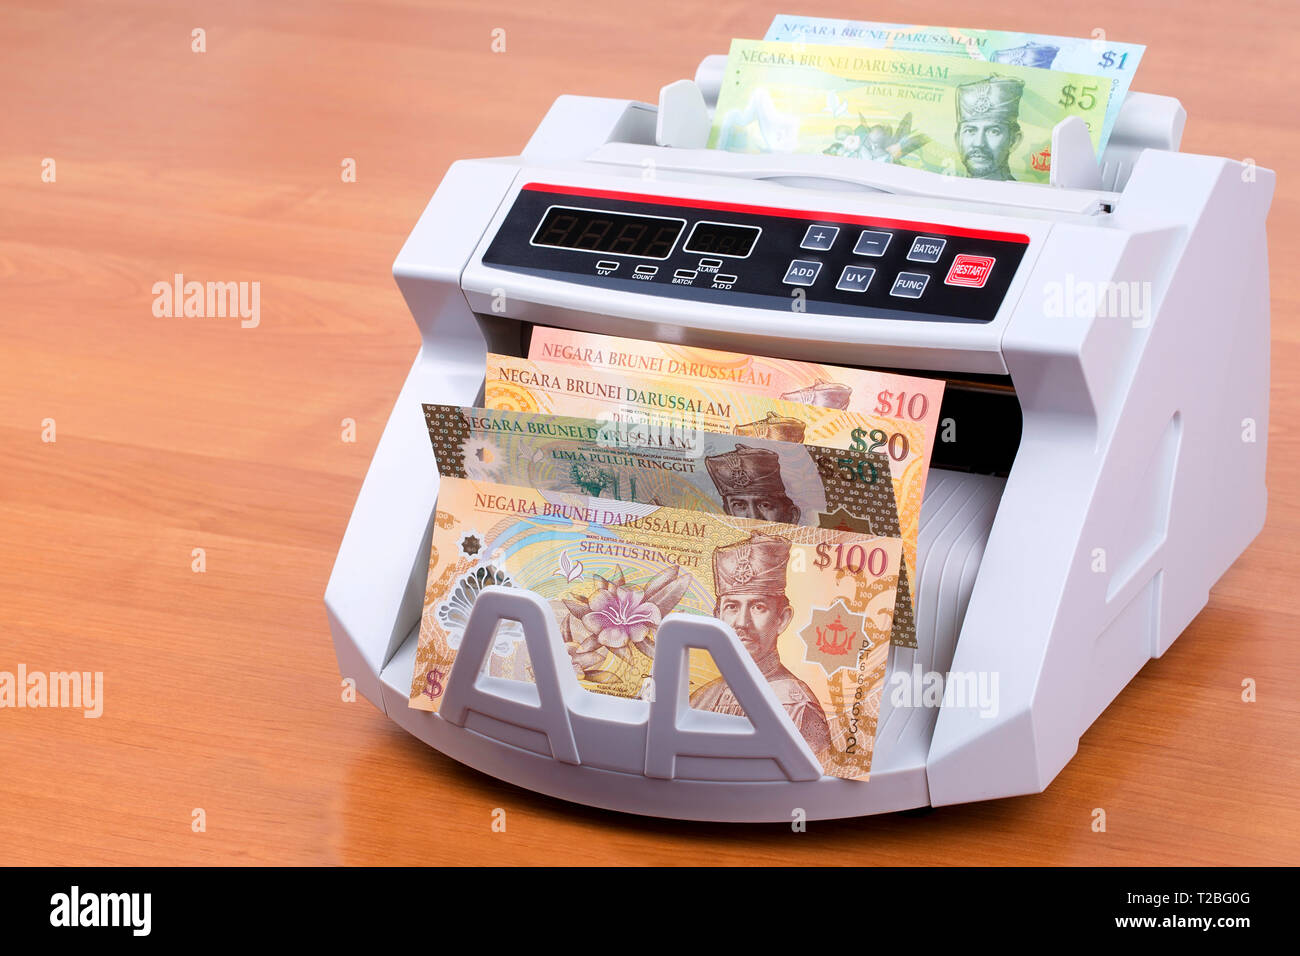 Brunei money in a counting machine - Stock Image